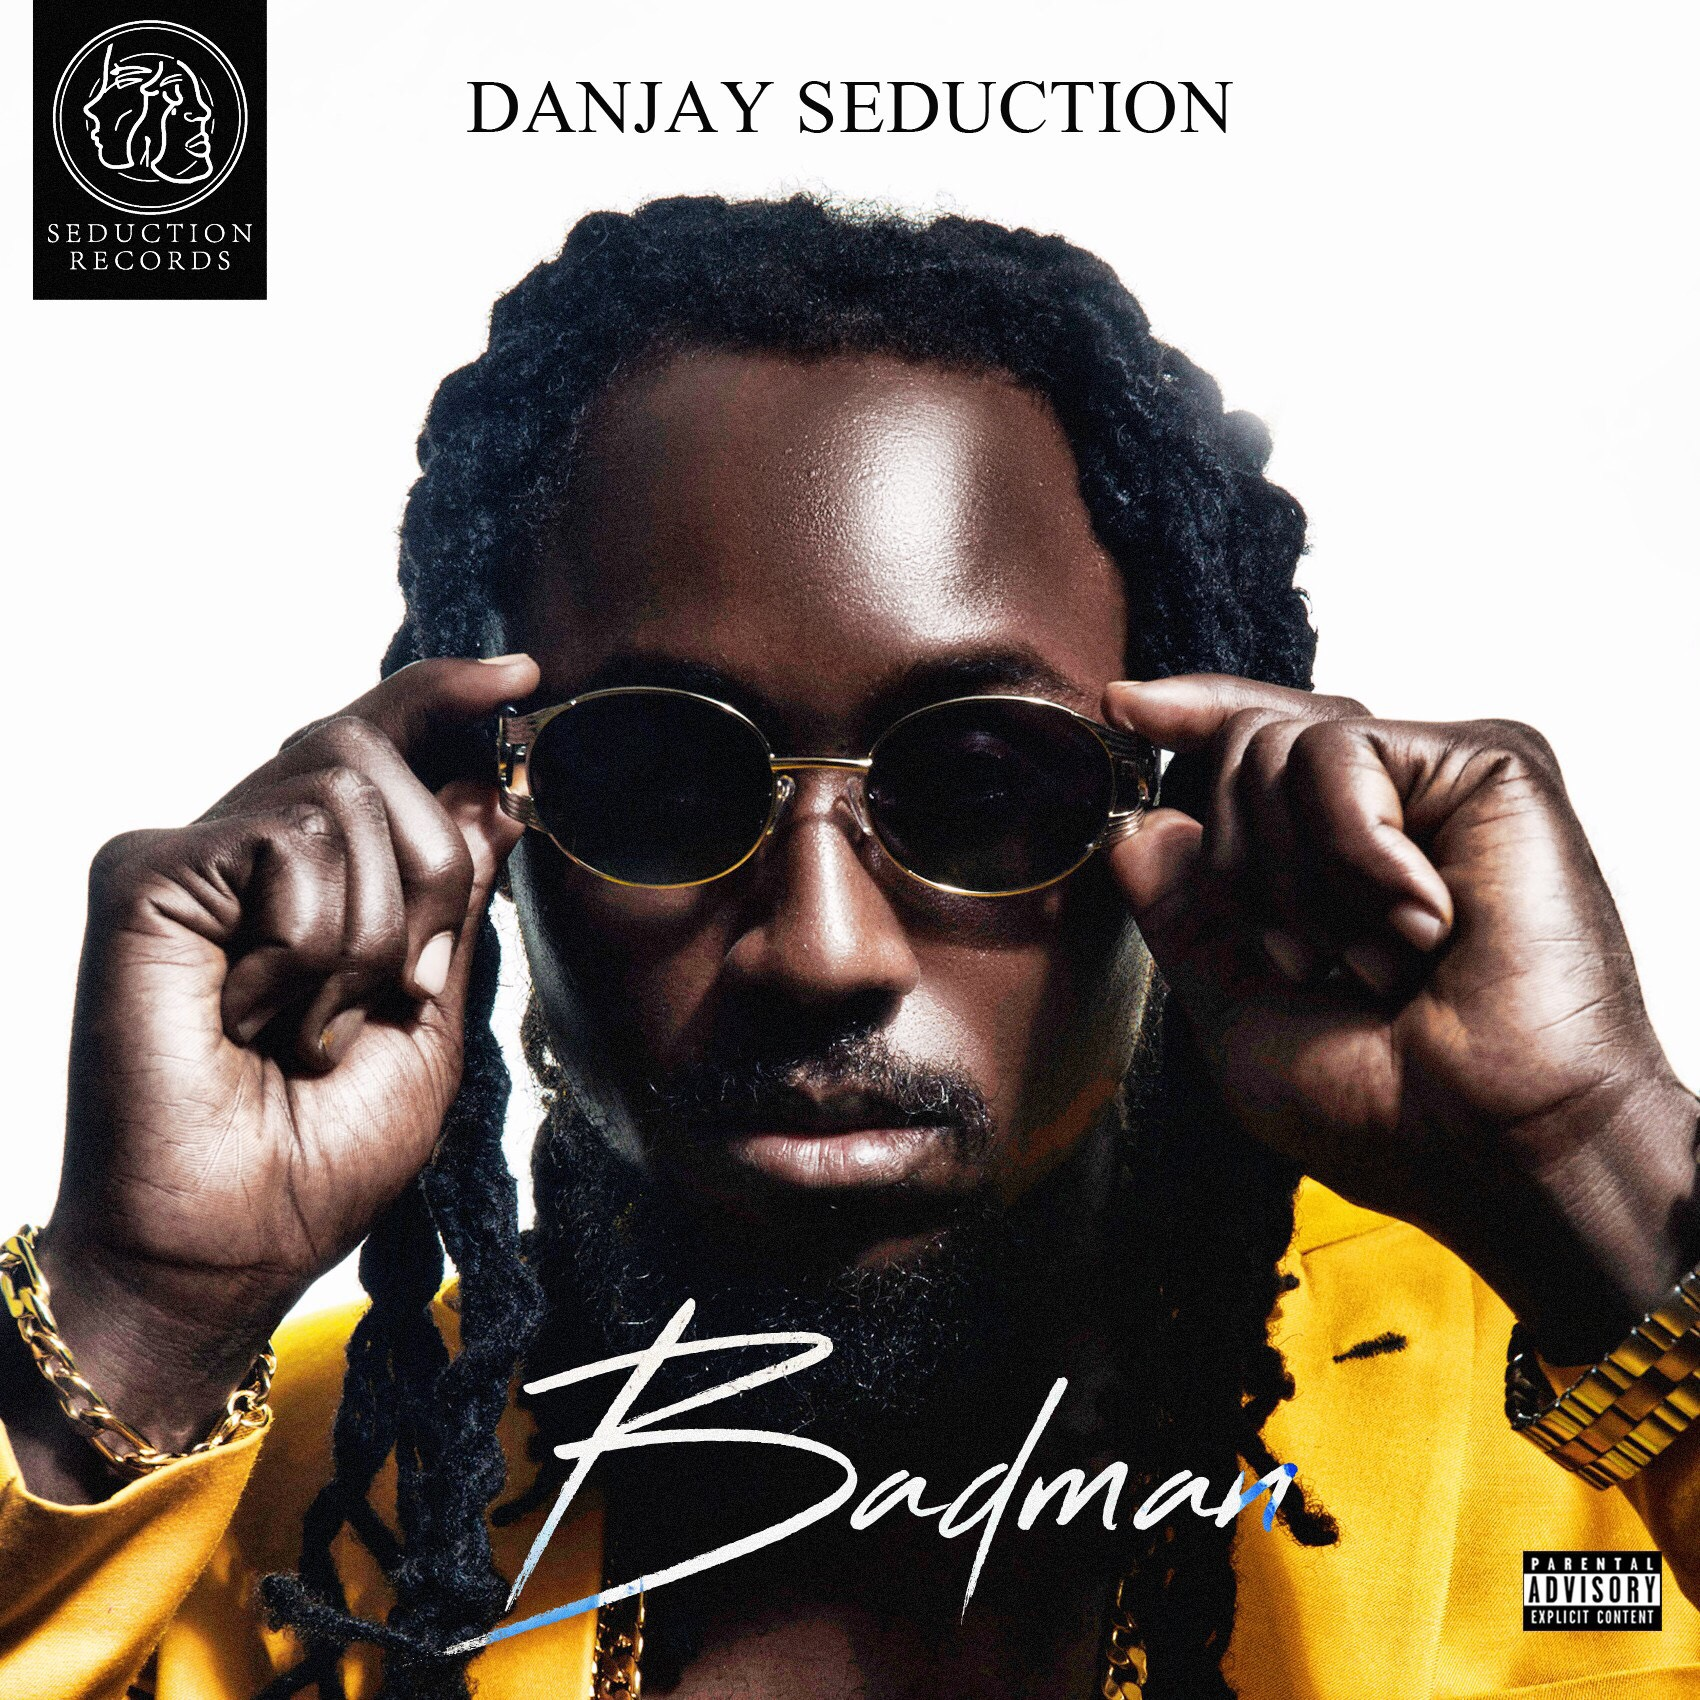 VIDEO + AUDIO: Danjay Seduction – Badman